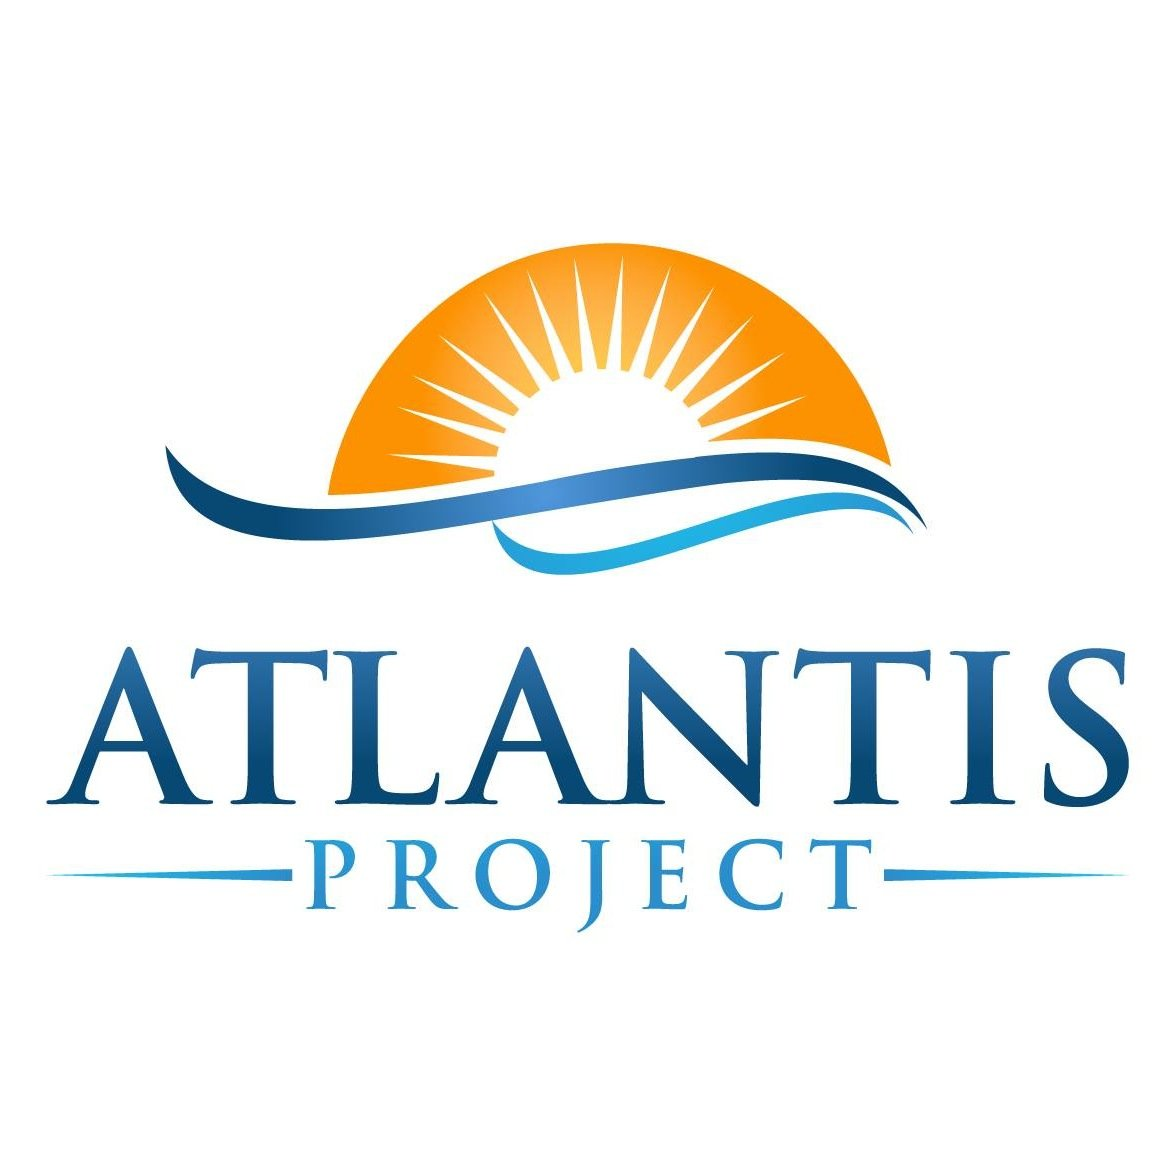 Atlantis Project | World-class Pre-med & Pre-health Shadowing Internships in Europe